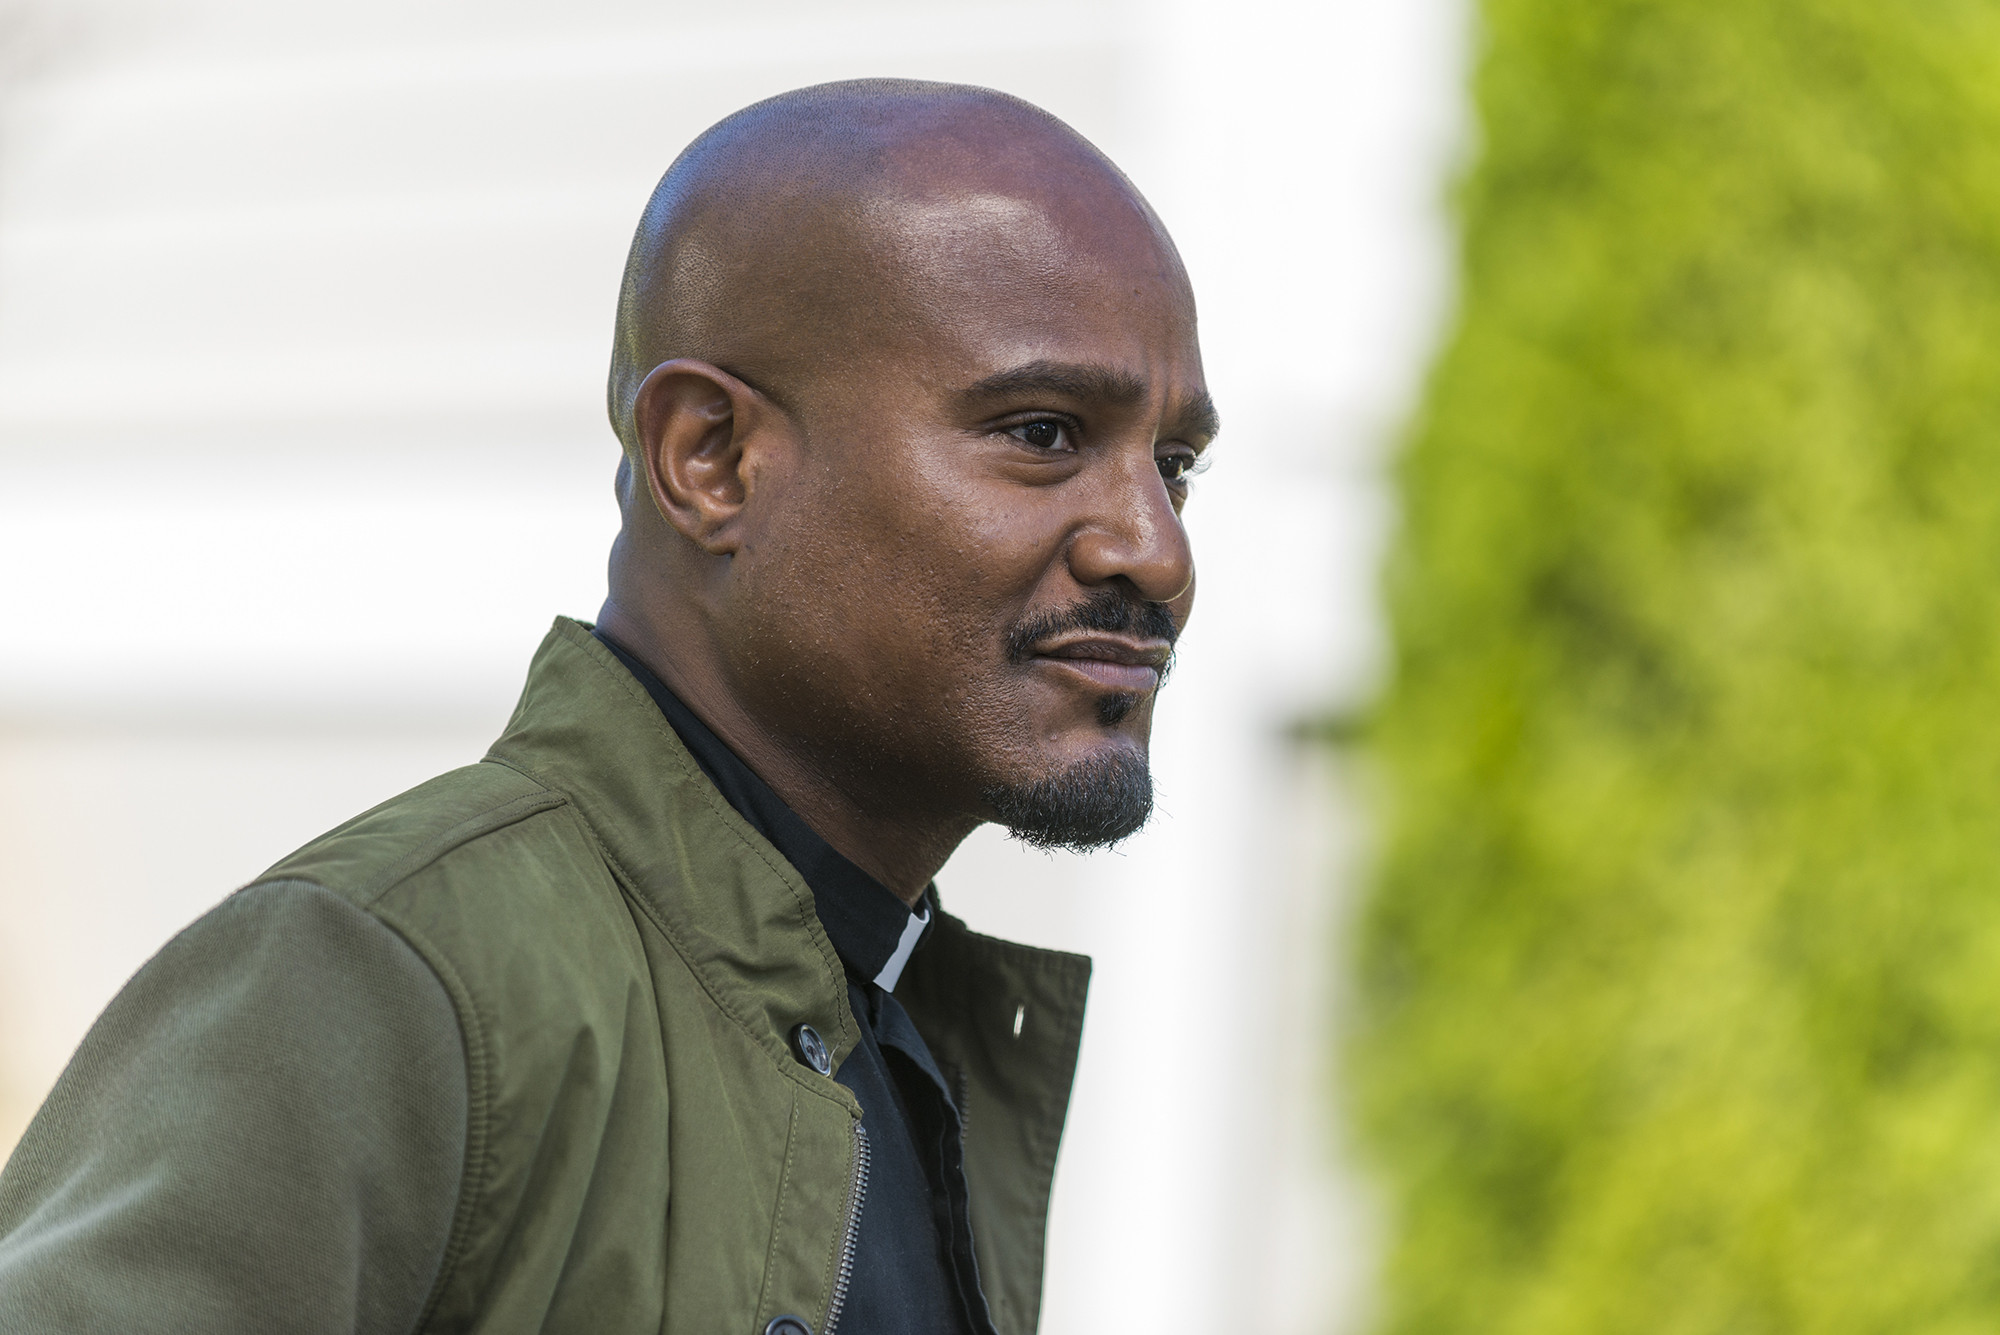 Seth Gilliam as Father Gabriel Stokes - The Walking Dead, Season 7, Episode 12